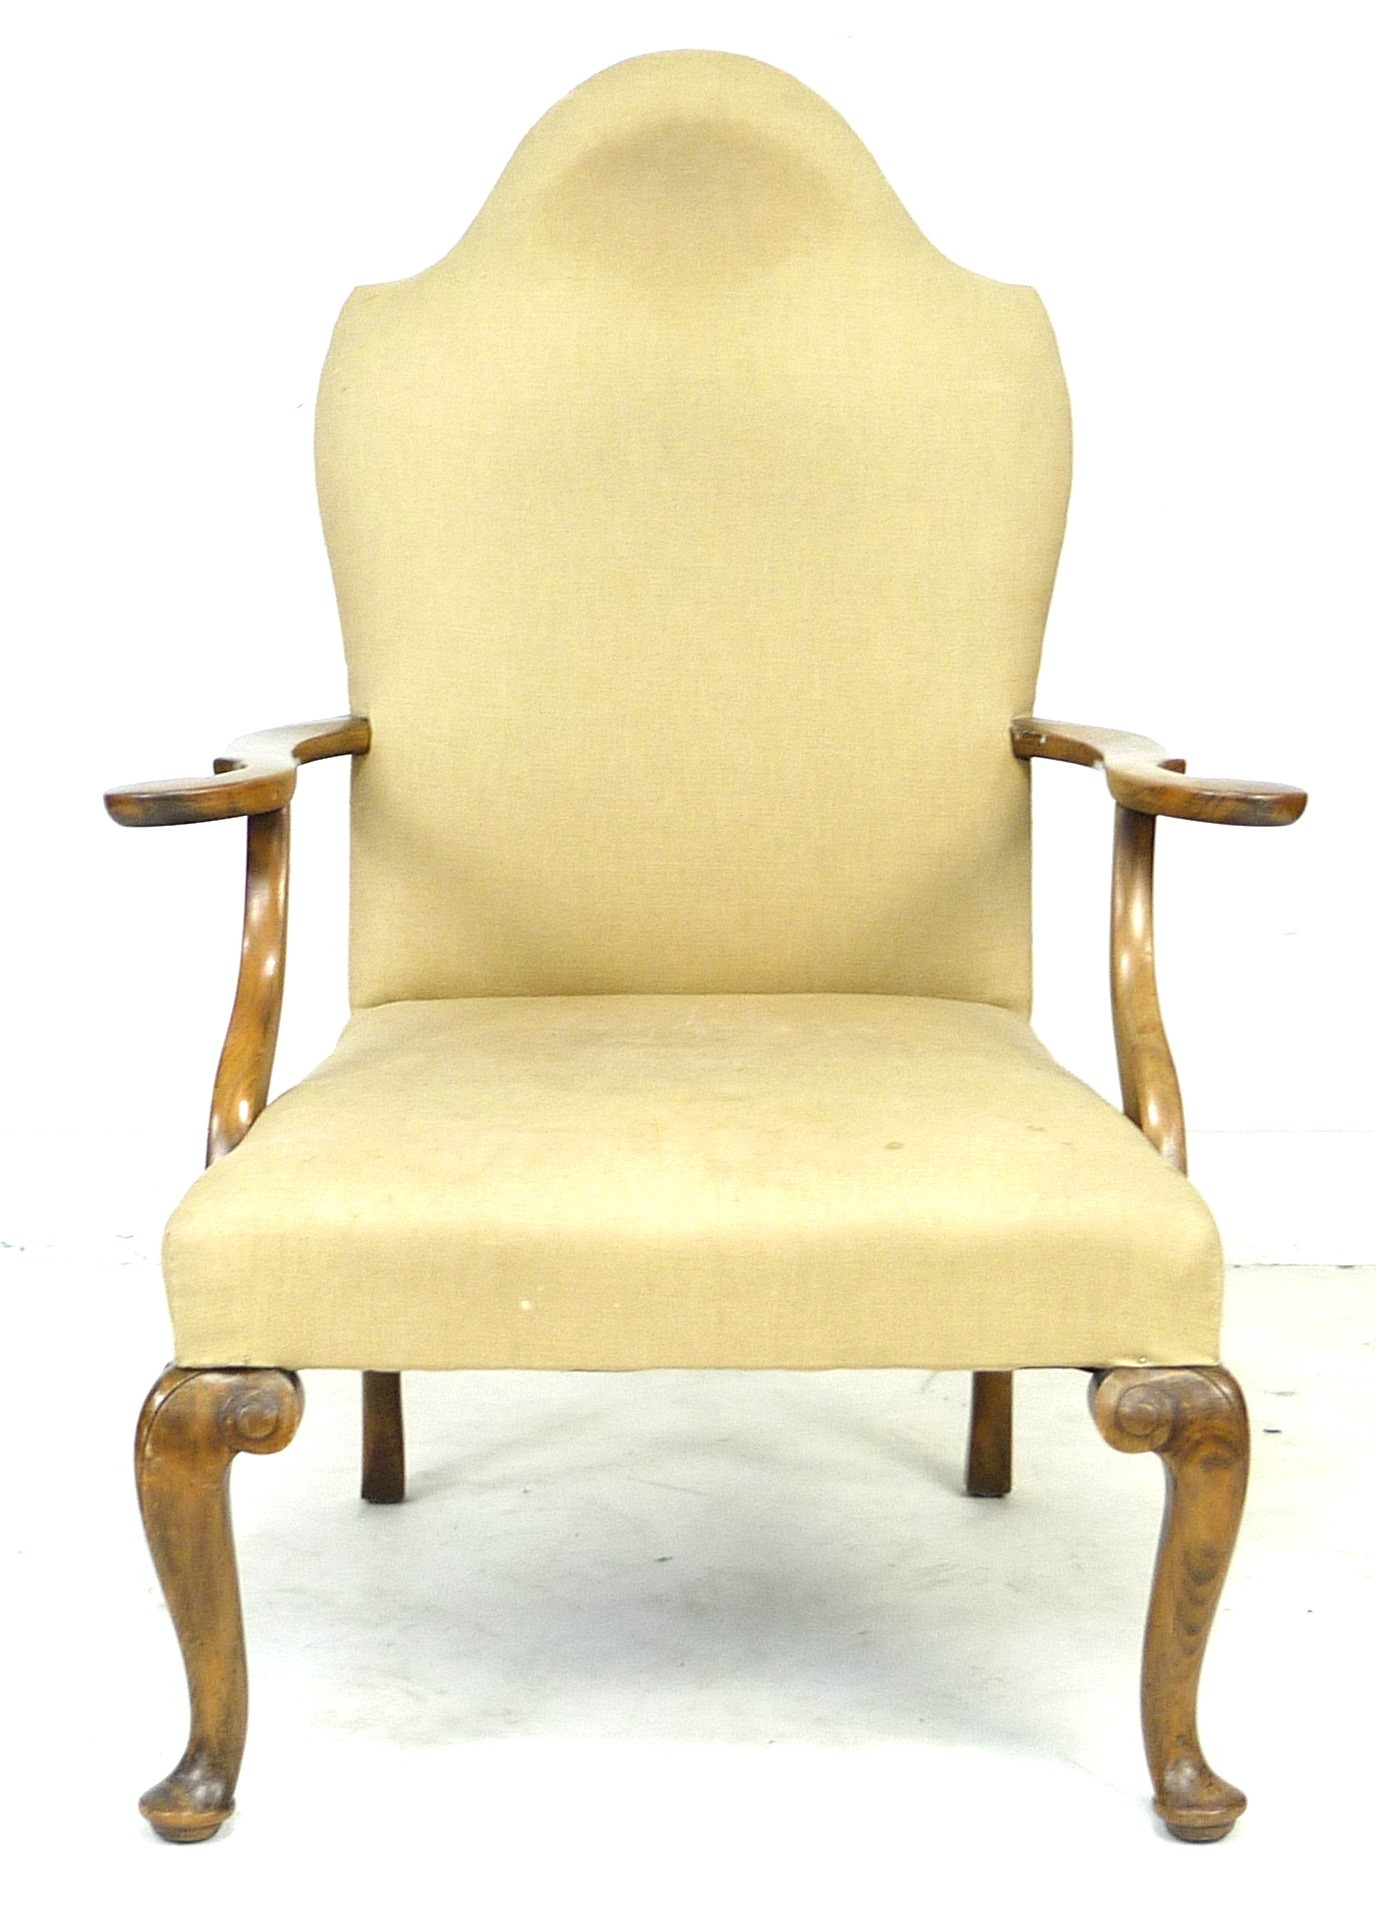 An Edwardian mahogany open armchair, in Queen Anne style, upholstered in cream foliate fabric, 72 by - Image 2 of 4